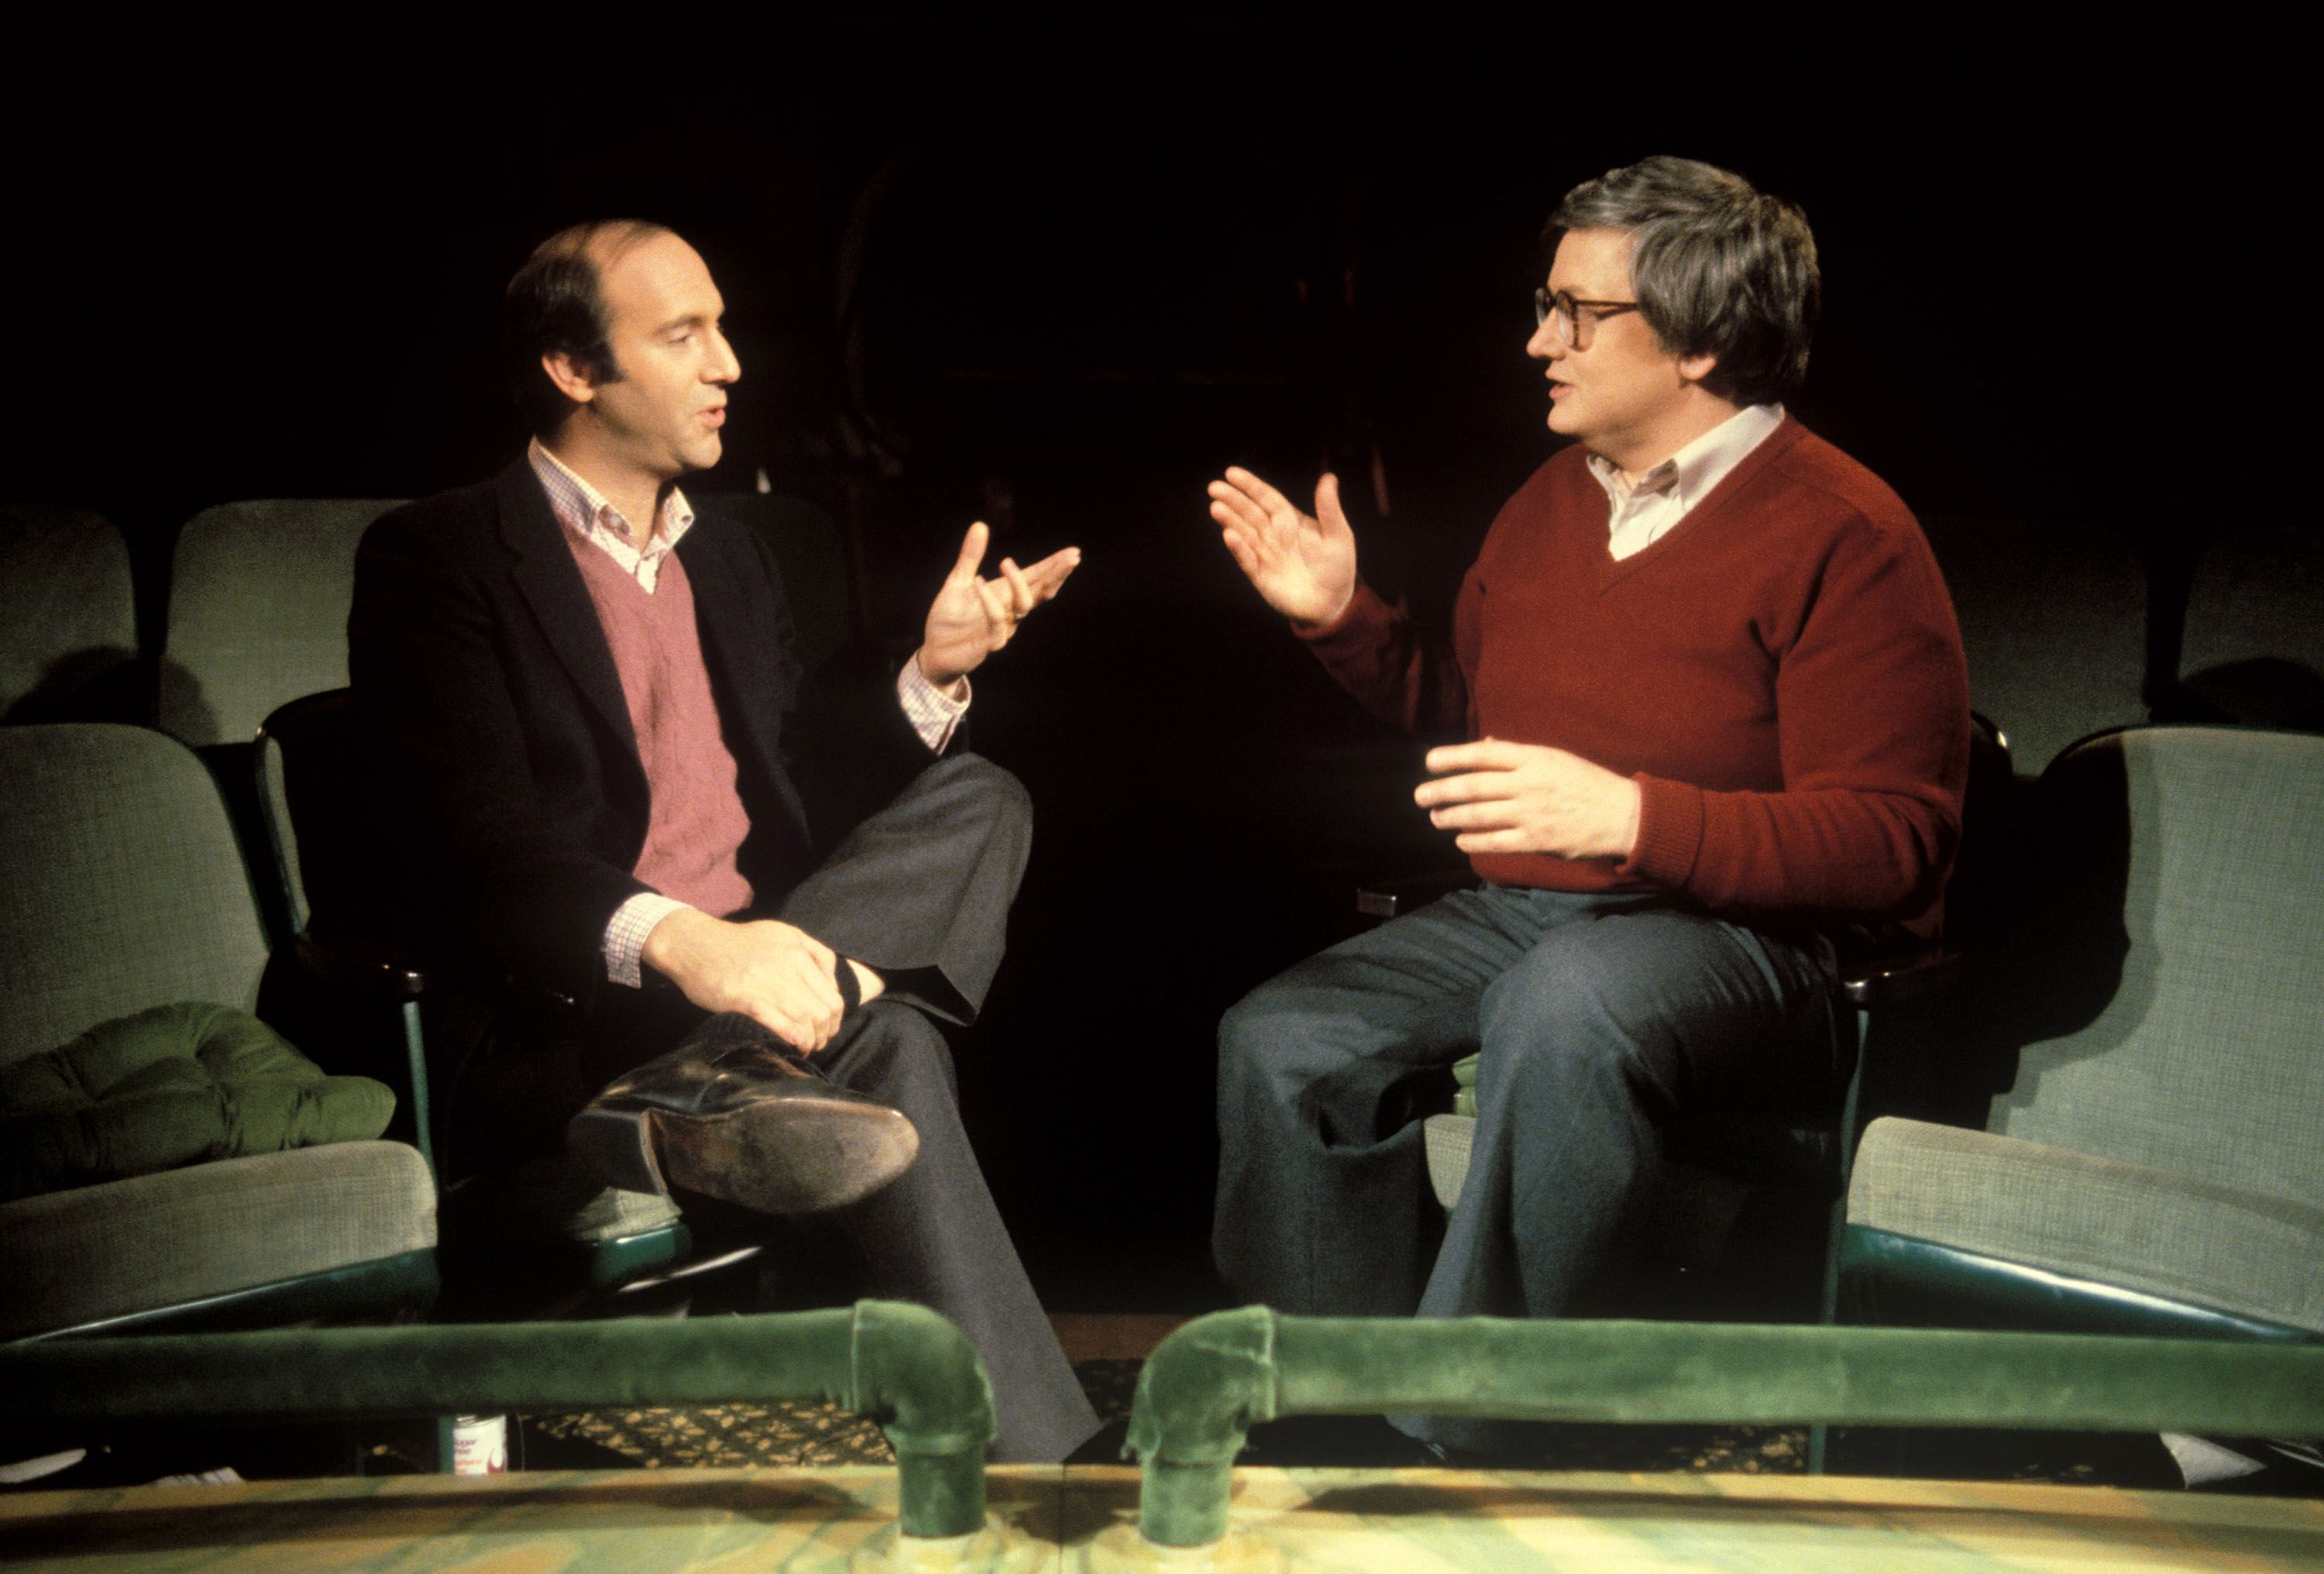 siskel and ebert relationship problems